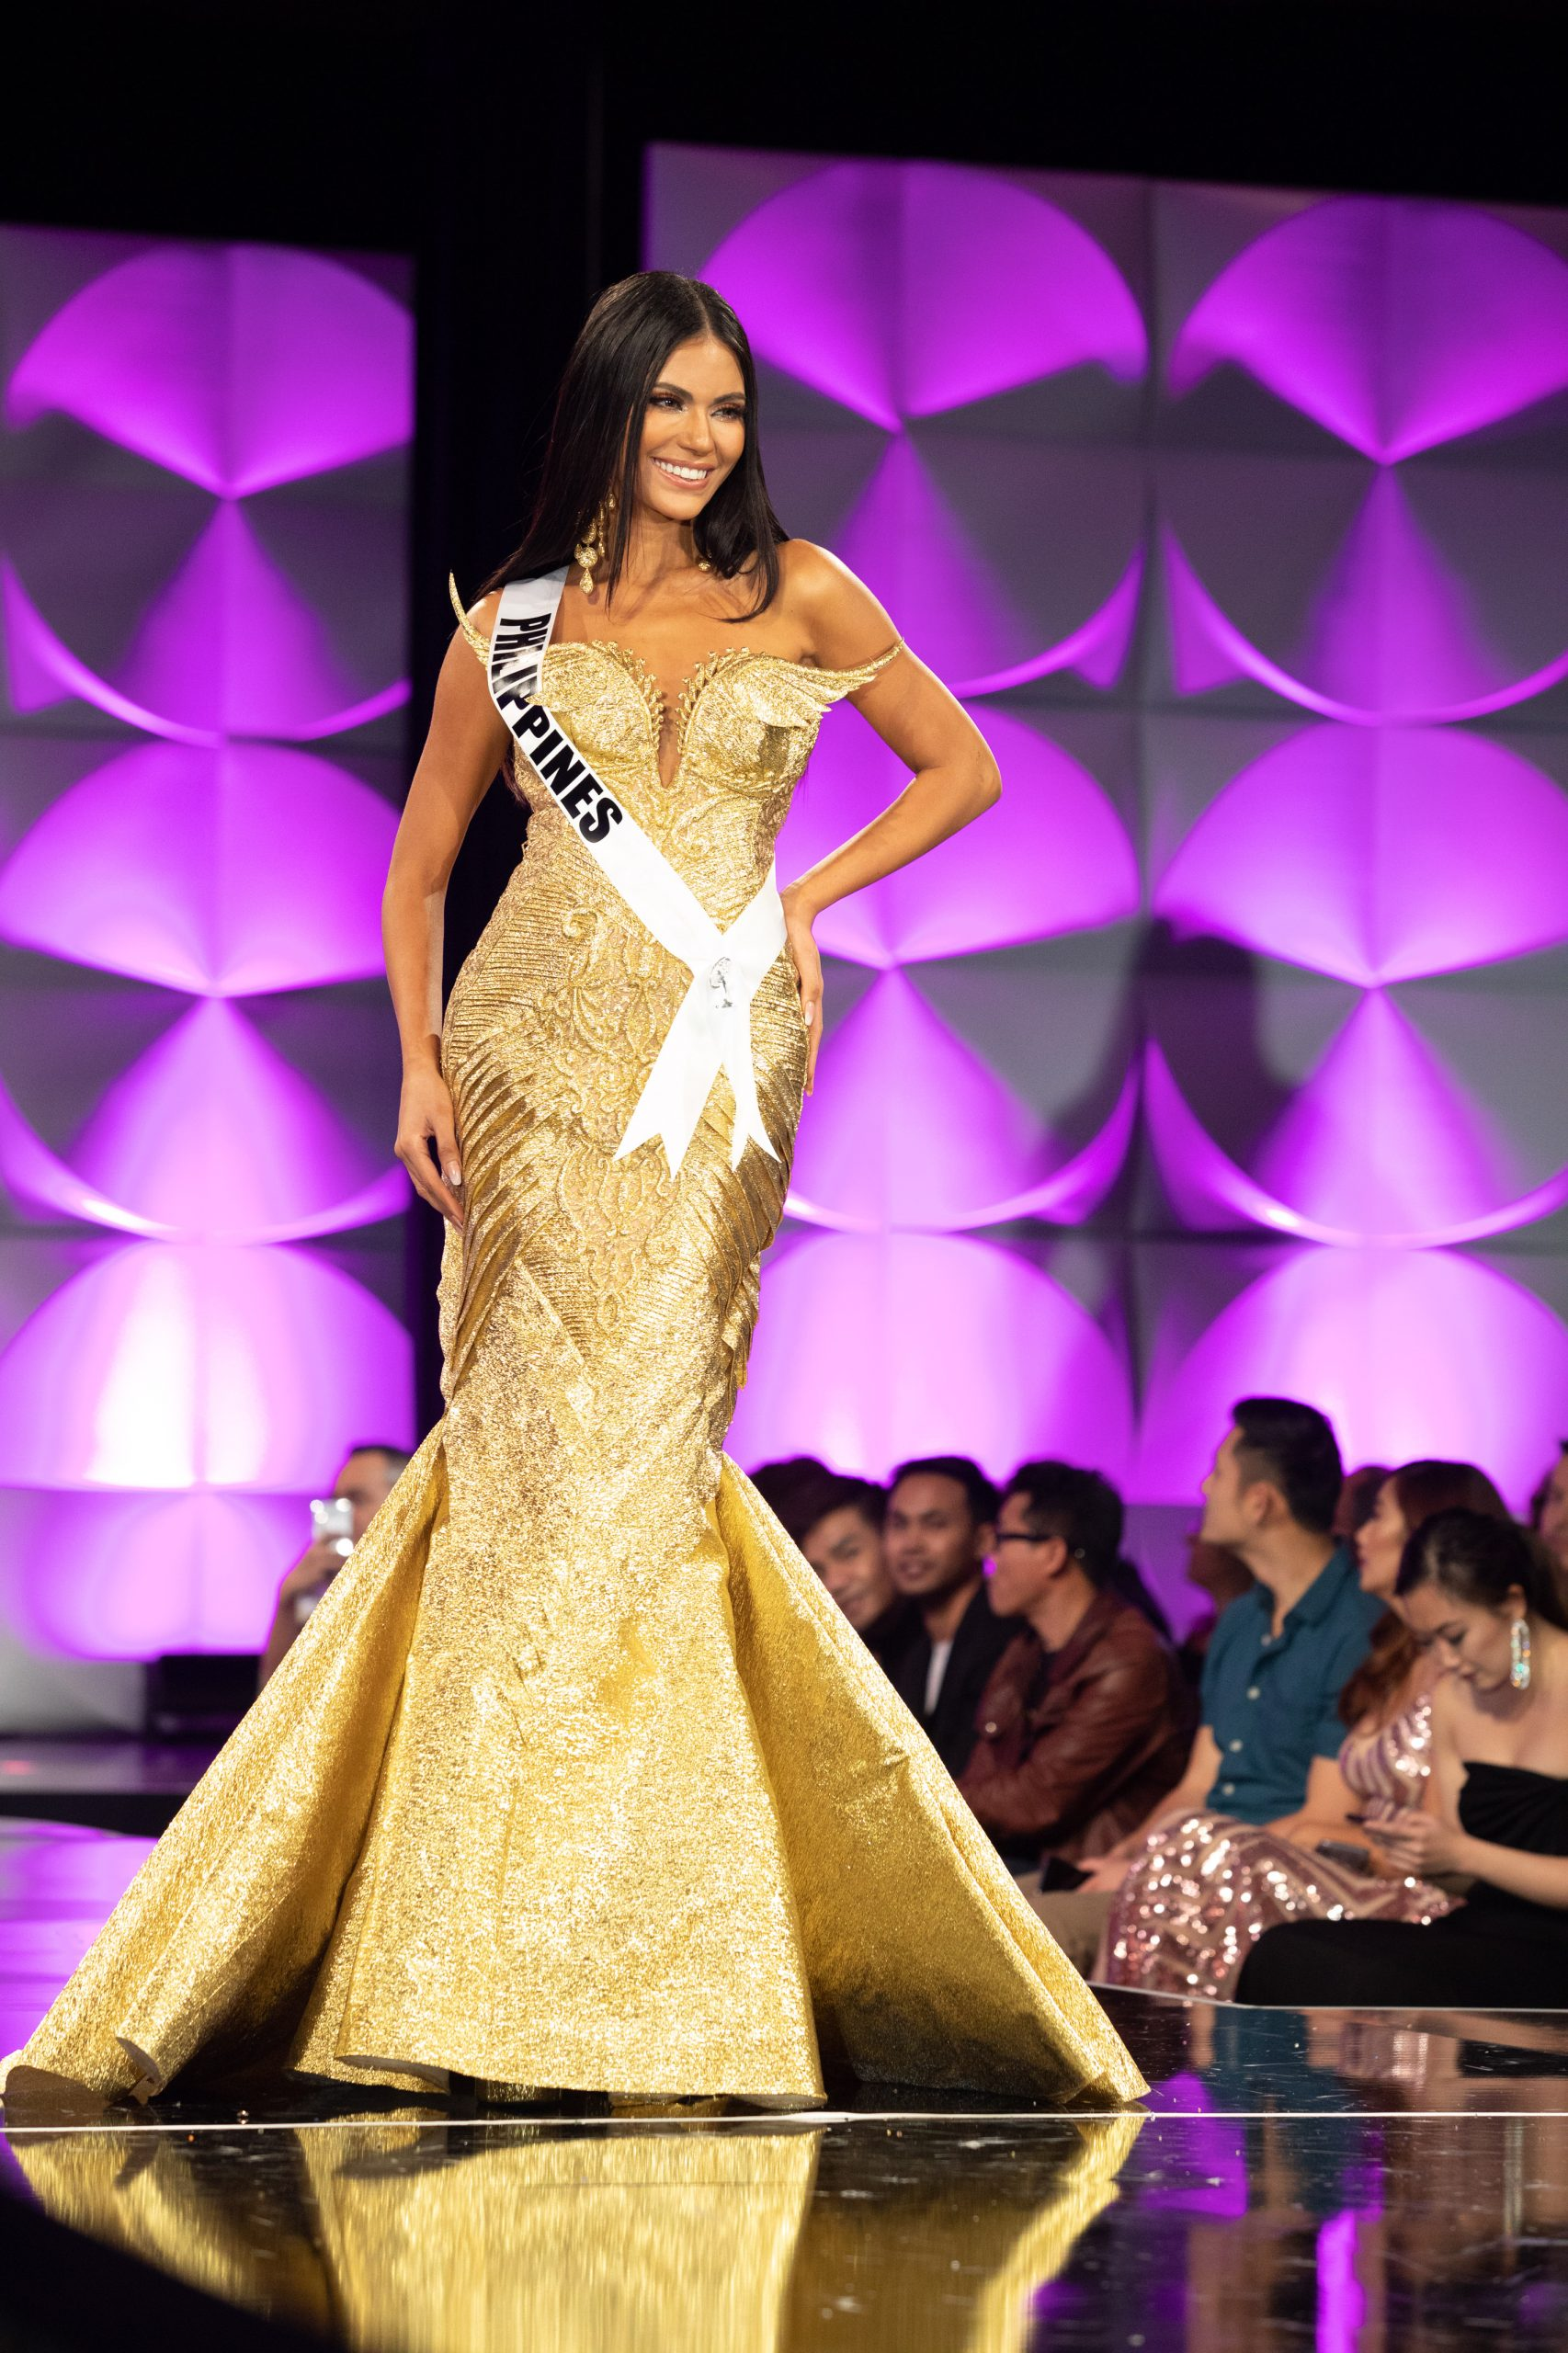 Miss Universe Preliminary Competition – Evening Gown